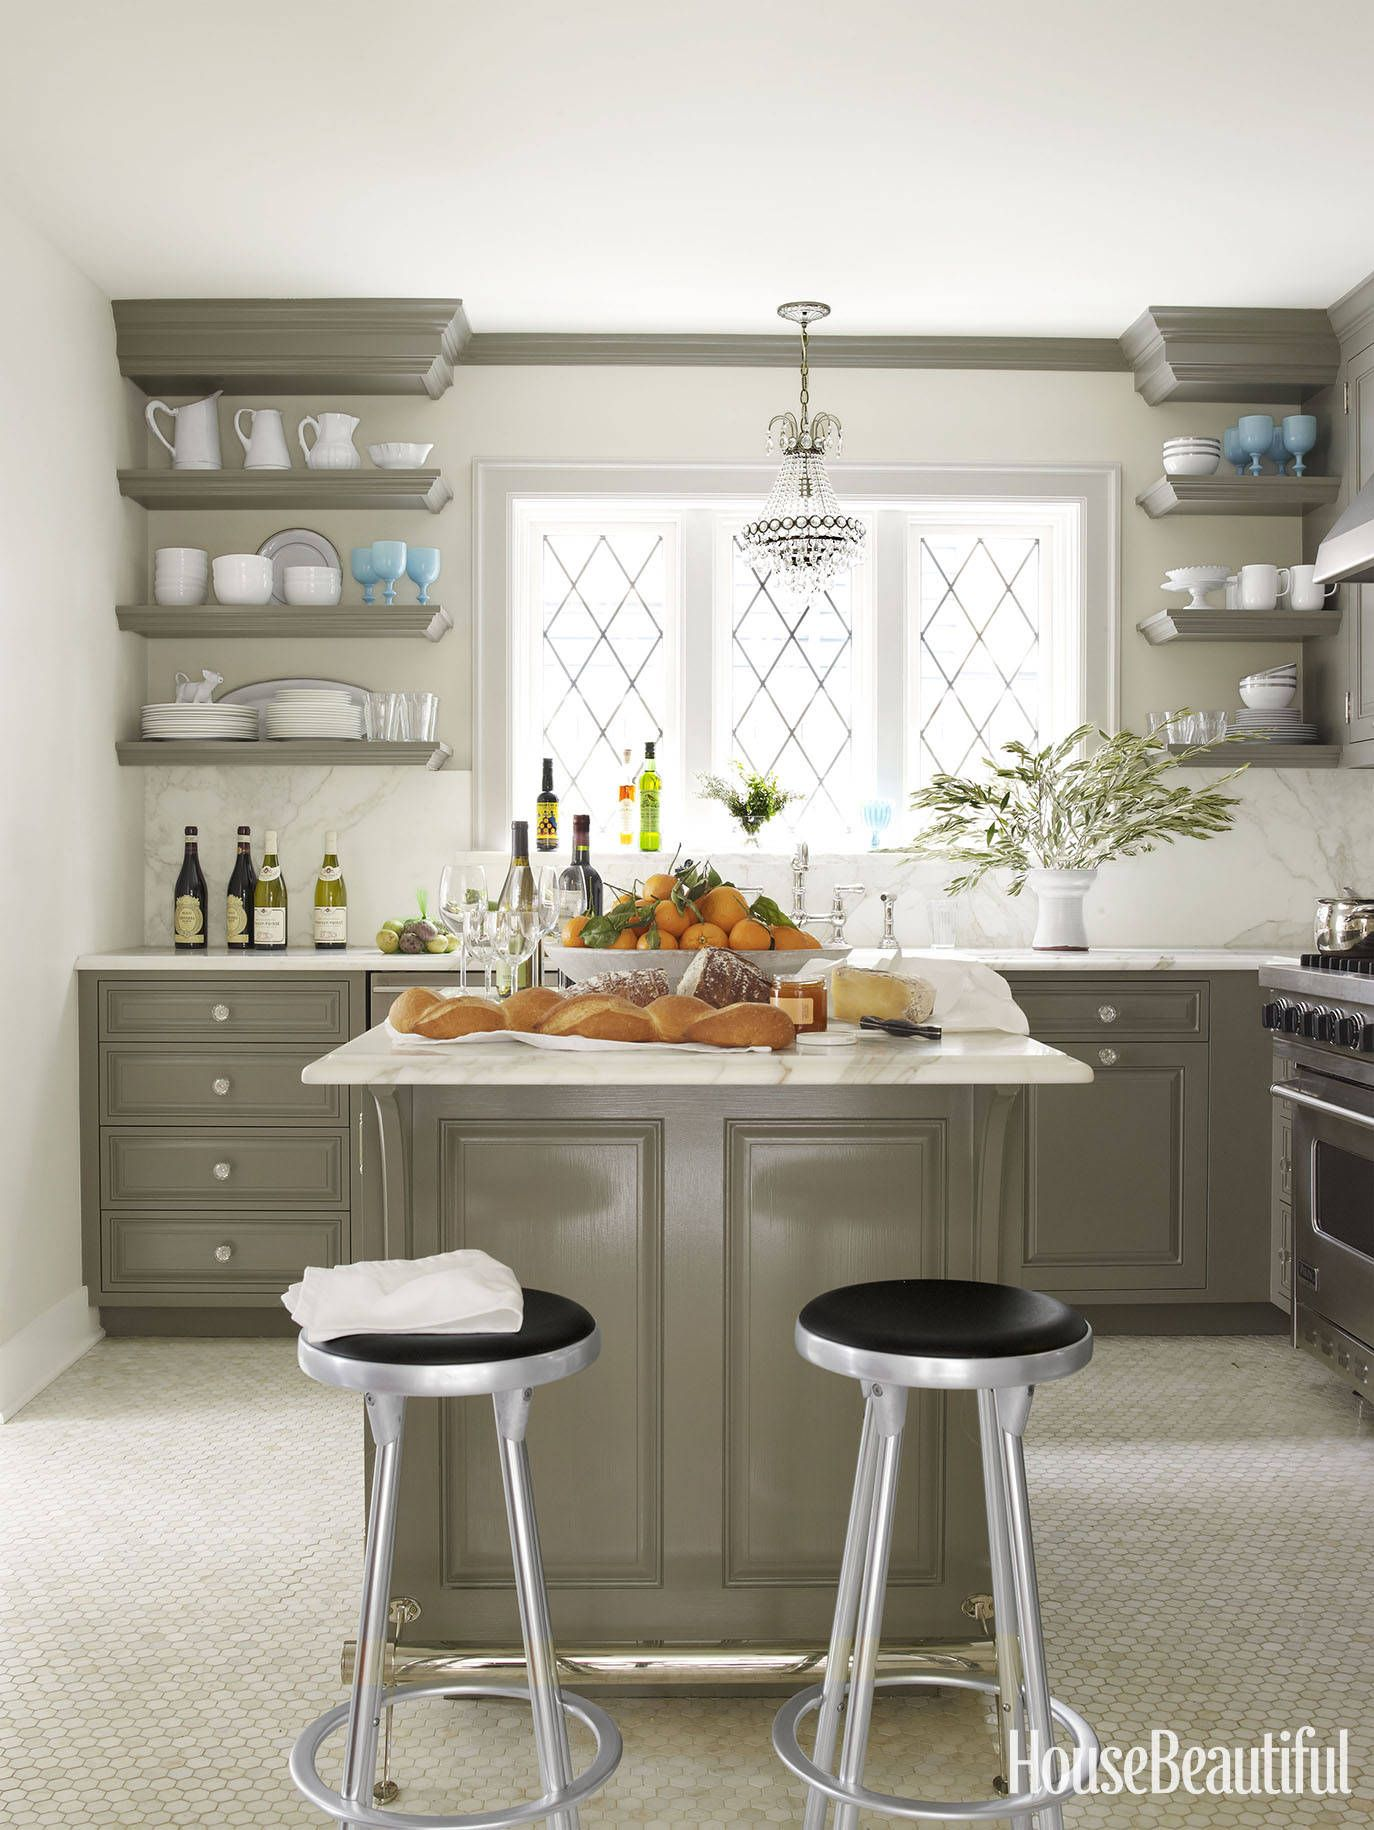 kitchen open shelves commercial flooring epoxy hate shelving these 15 kitchens might convince you otherwise